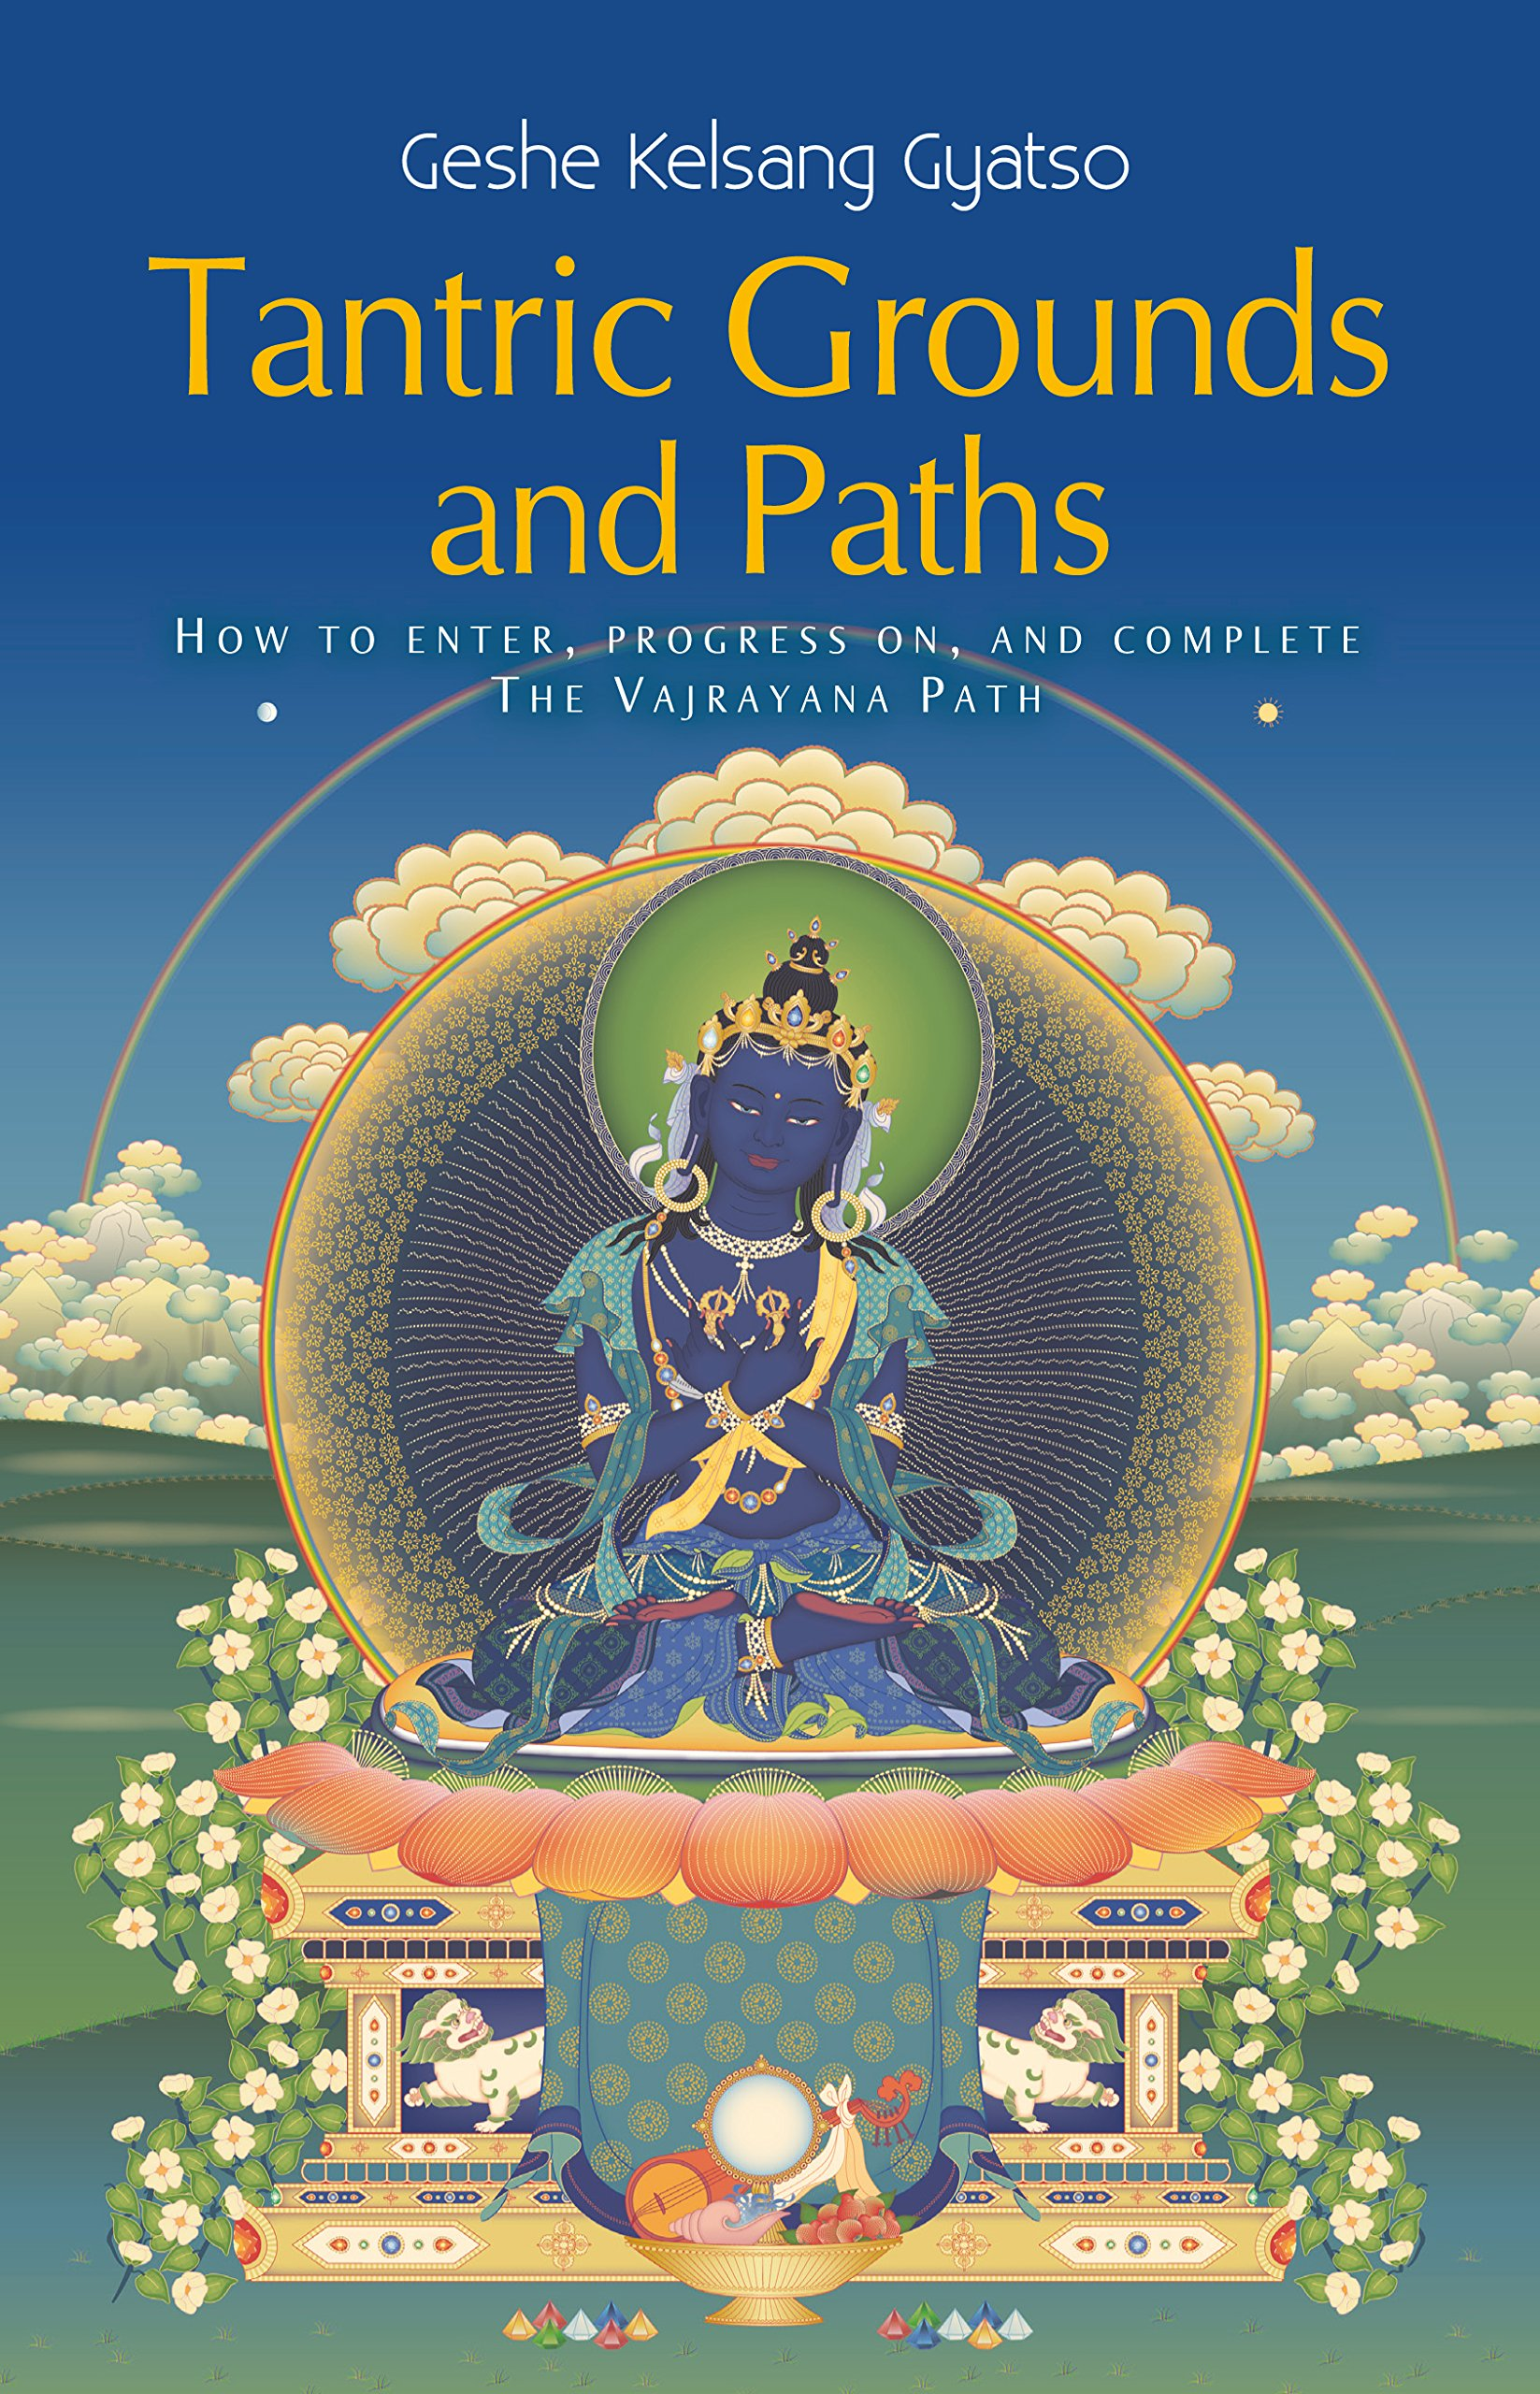 Tantric Grounds and Paths: How to Enter, Progress on, and